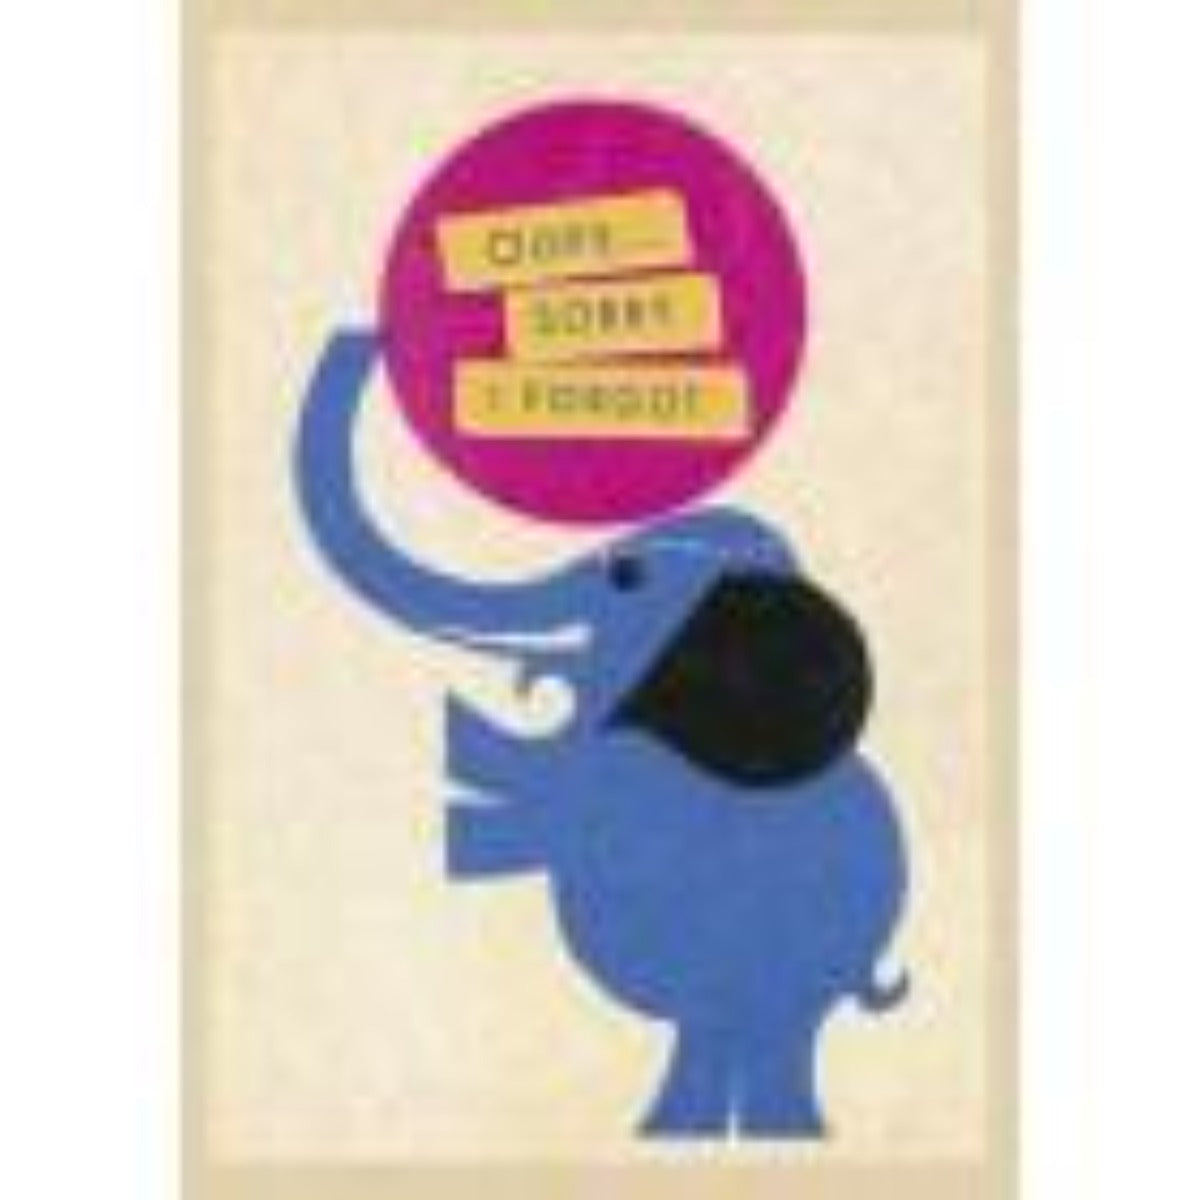 Artpress Card - Belated Birthday - Elephant Acrobat